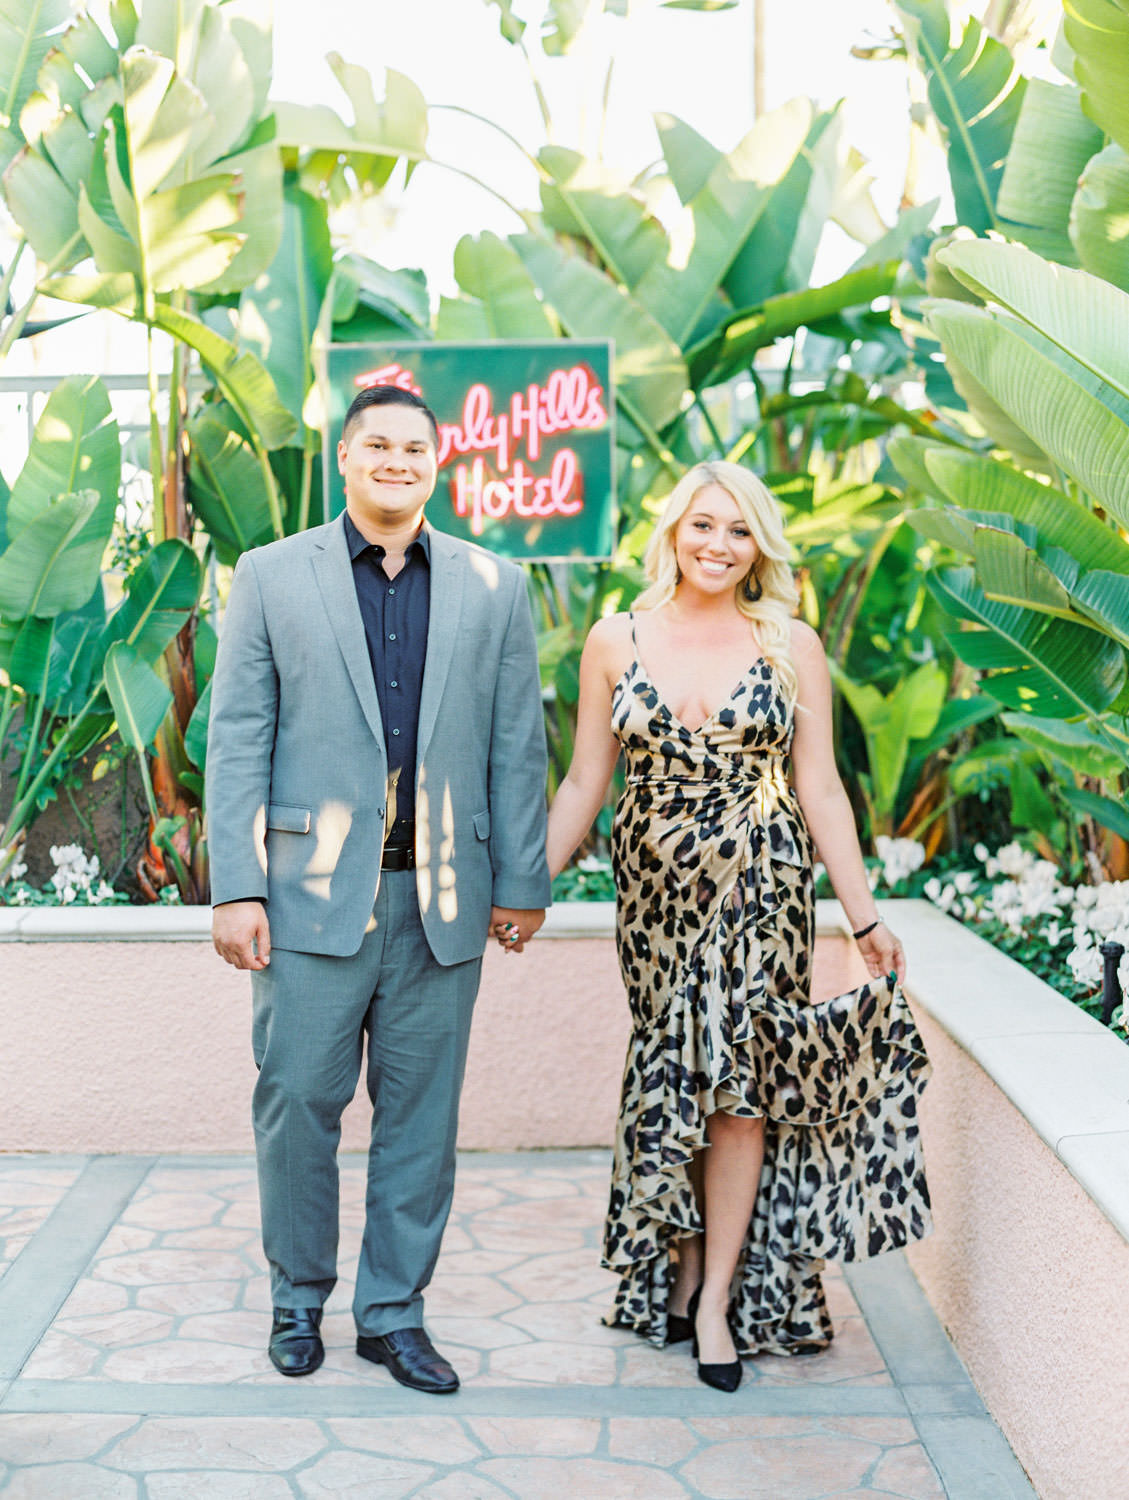 Bride in a leopard print dress and groom in grey suit walking in front of the Beverly Hills Hotel neon sign, film Beverly Hills Hotel Engagement Photos by Cavin Elizabeth Photography